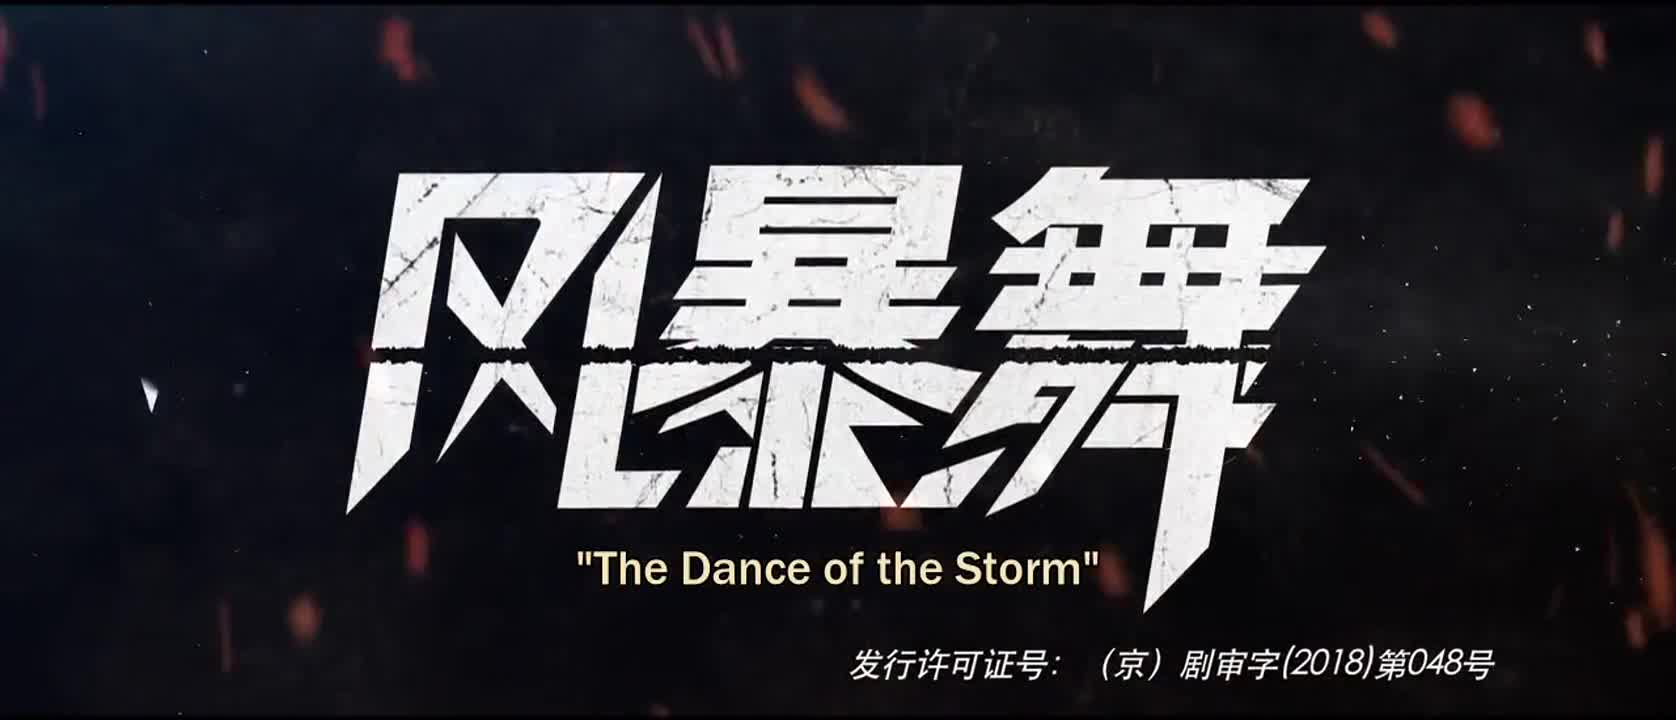 The Dance of the Storm (2021)